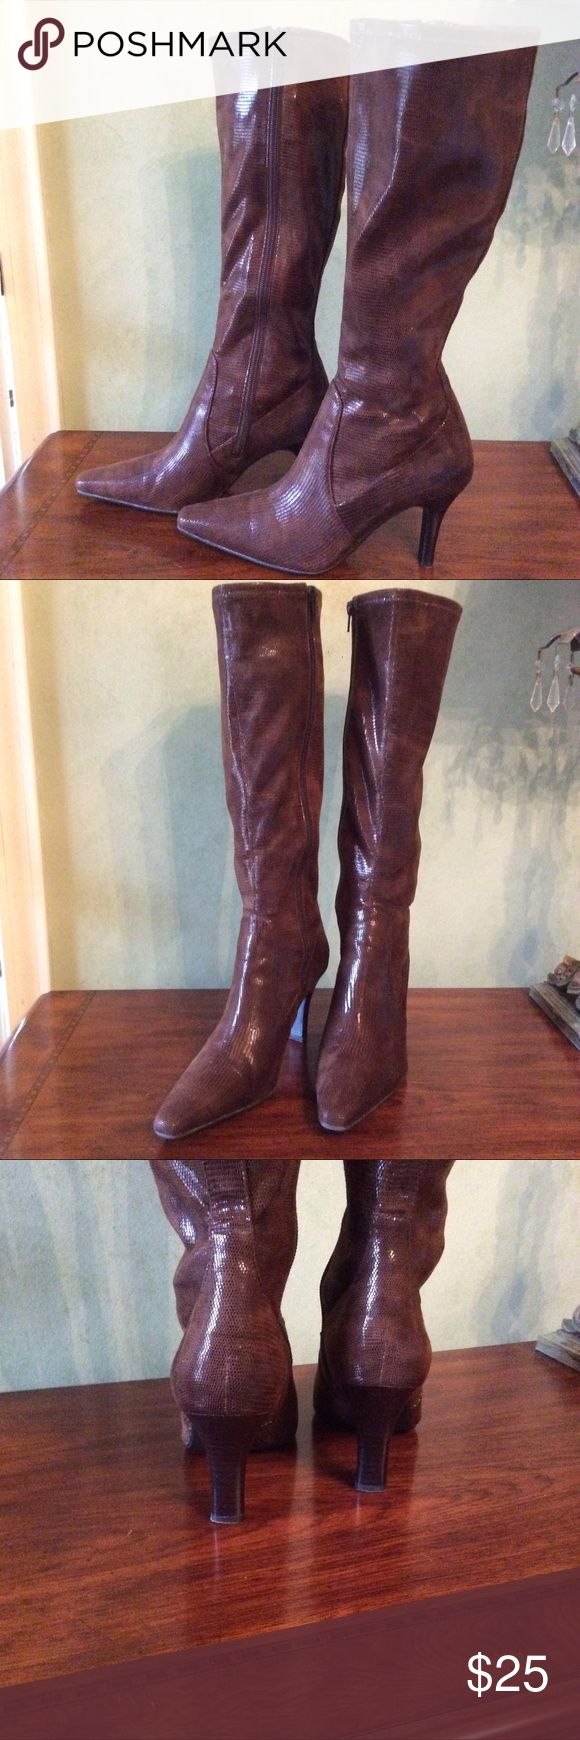 "Faux Croc Knee high Boots Brown faux crocodile boots by Alfani. Inside zipper plus fabric has some stretch. 3-1/2"" heel 16"" high shaft. Sz 7.5 EUC Alfani Shoes Heeled Boots"